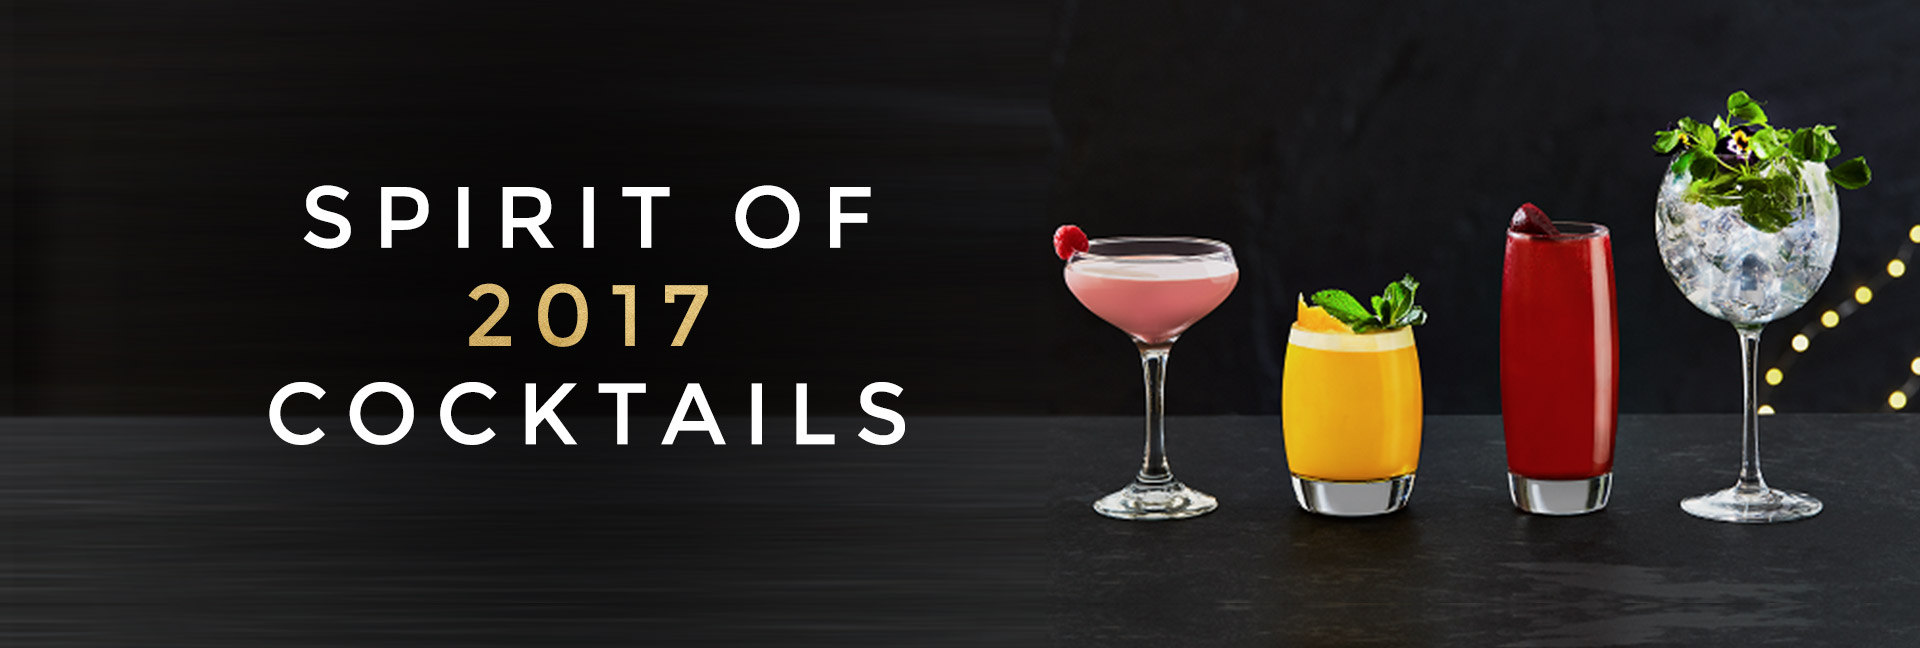 Spirit of 2017 cocktails at All Bar One Glasgow